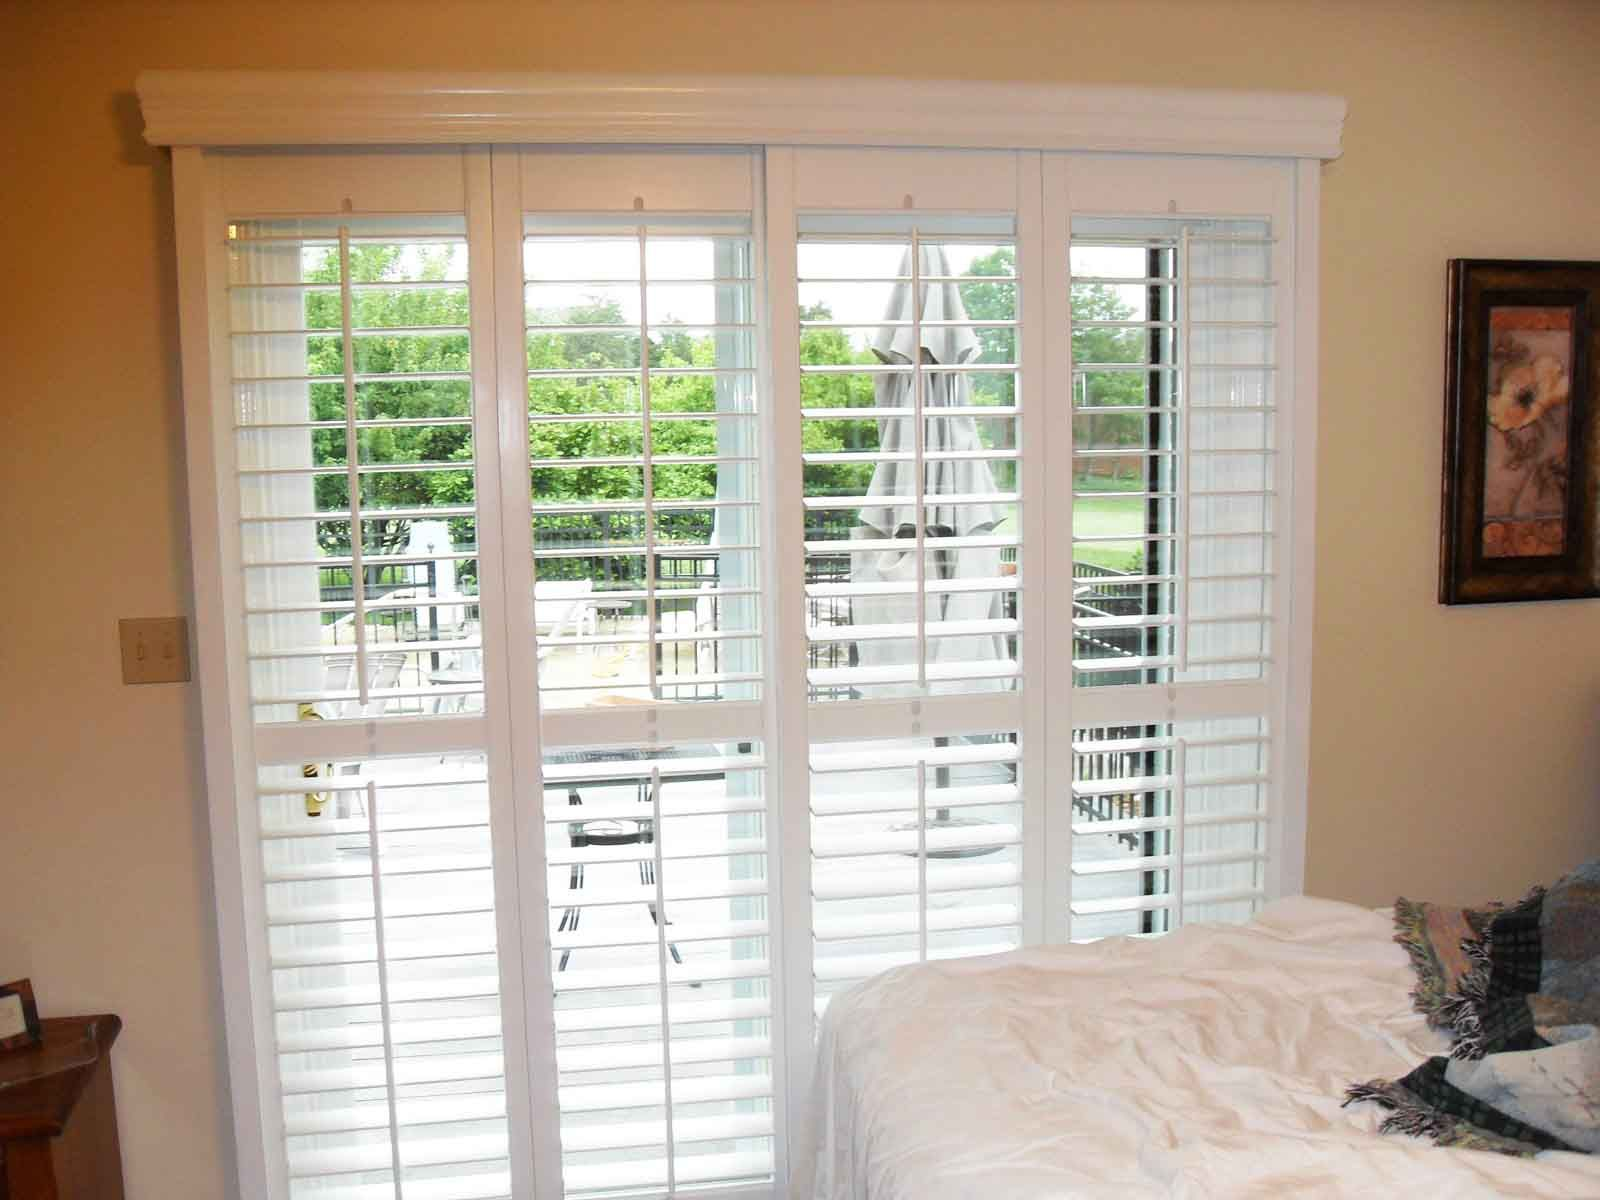 Blinds For French Doors Material Cost Color Of The Blind - Hunter douglas blinds for patio doors